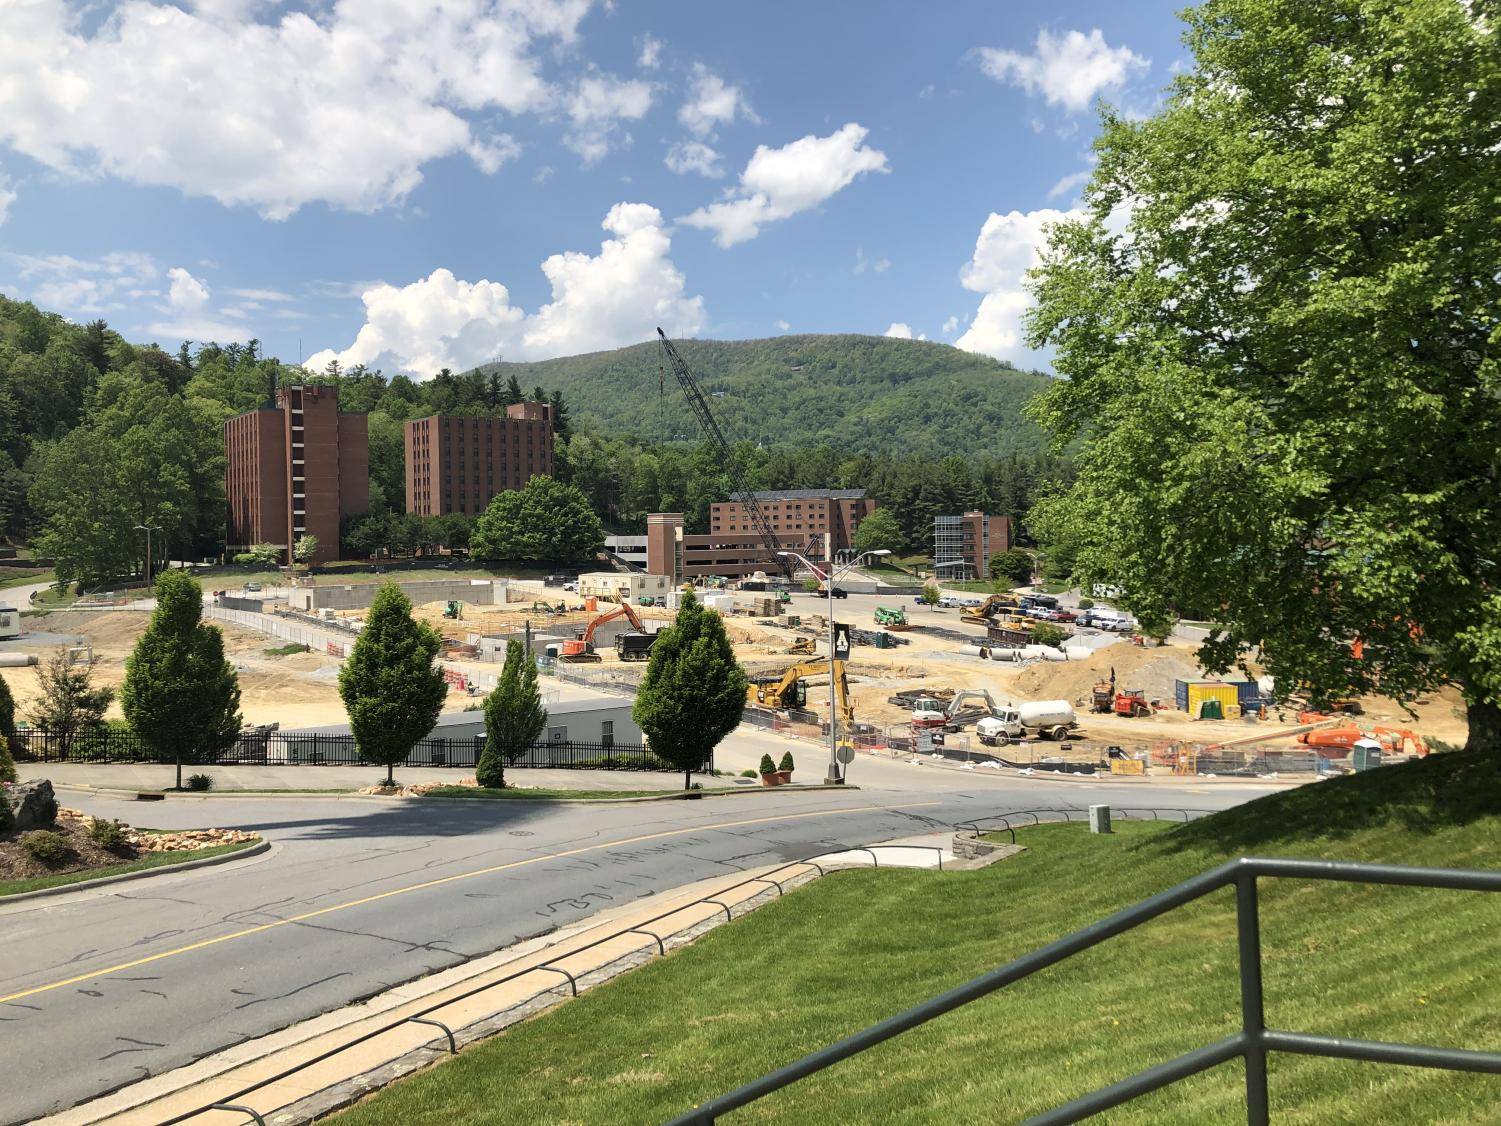 Construction of parking deck and preparations for dorms continue to progress on West Campus